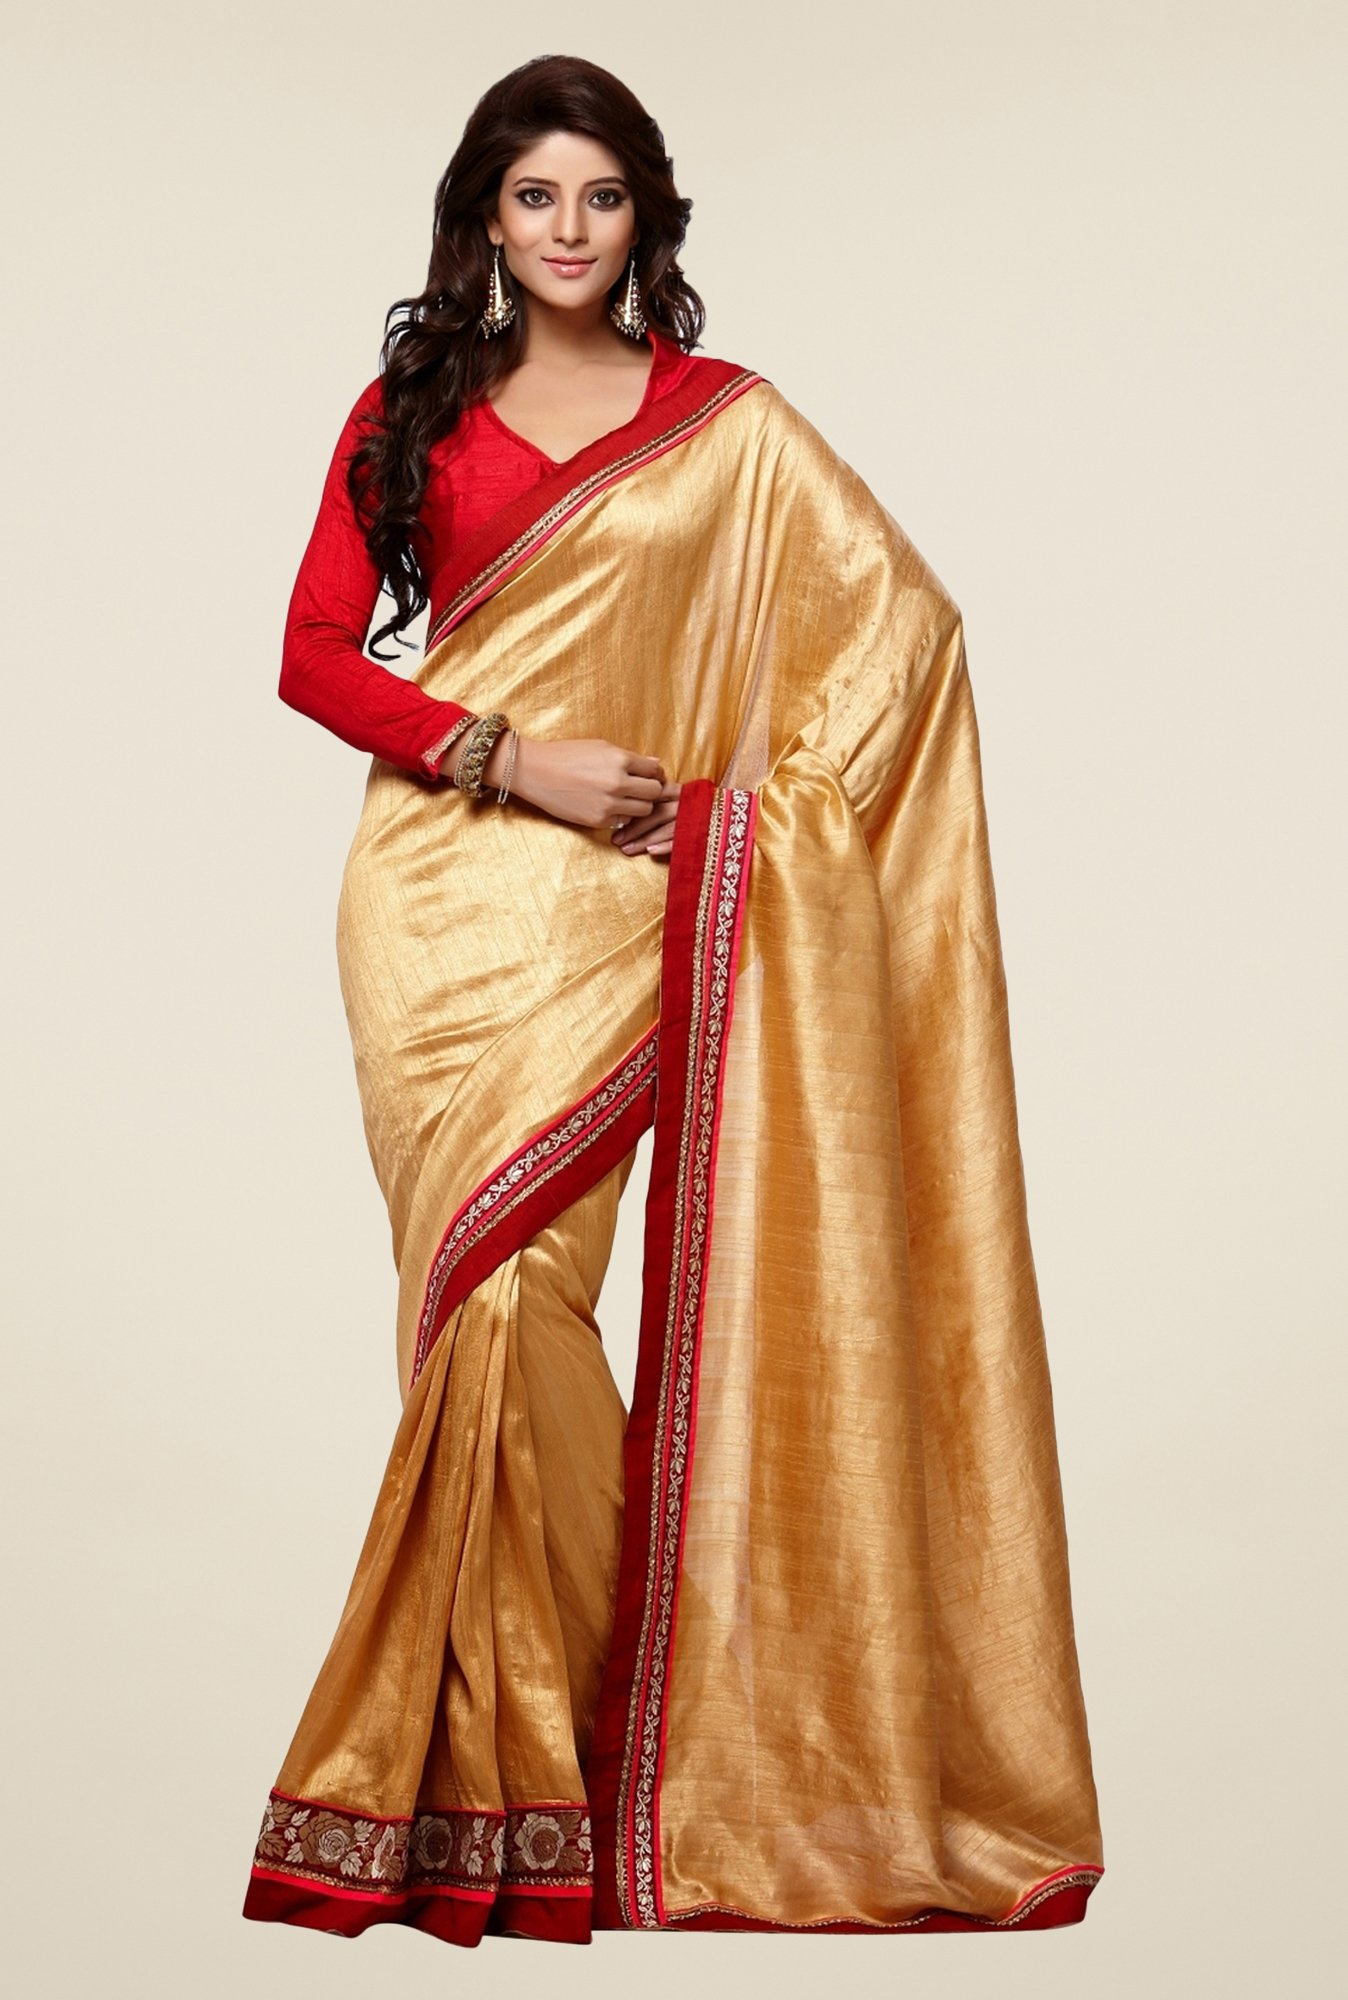 Triveni Gold Solid Manipuri Silk Saree